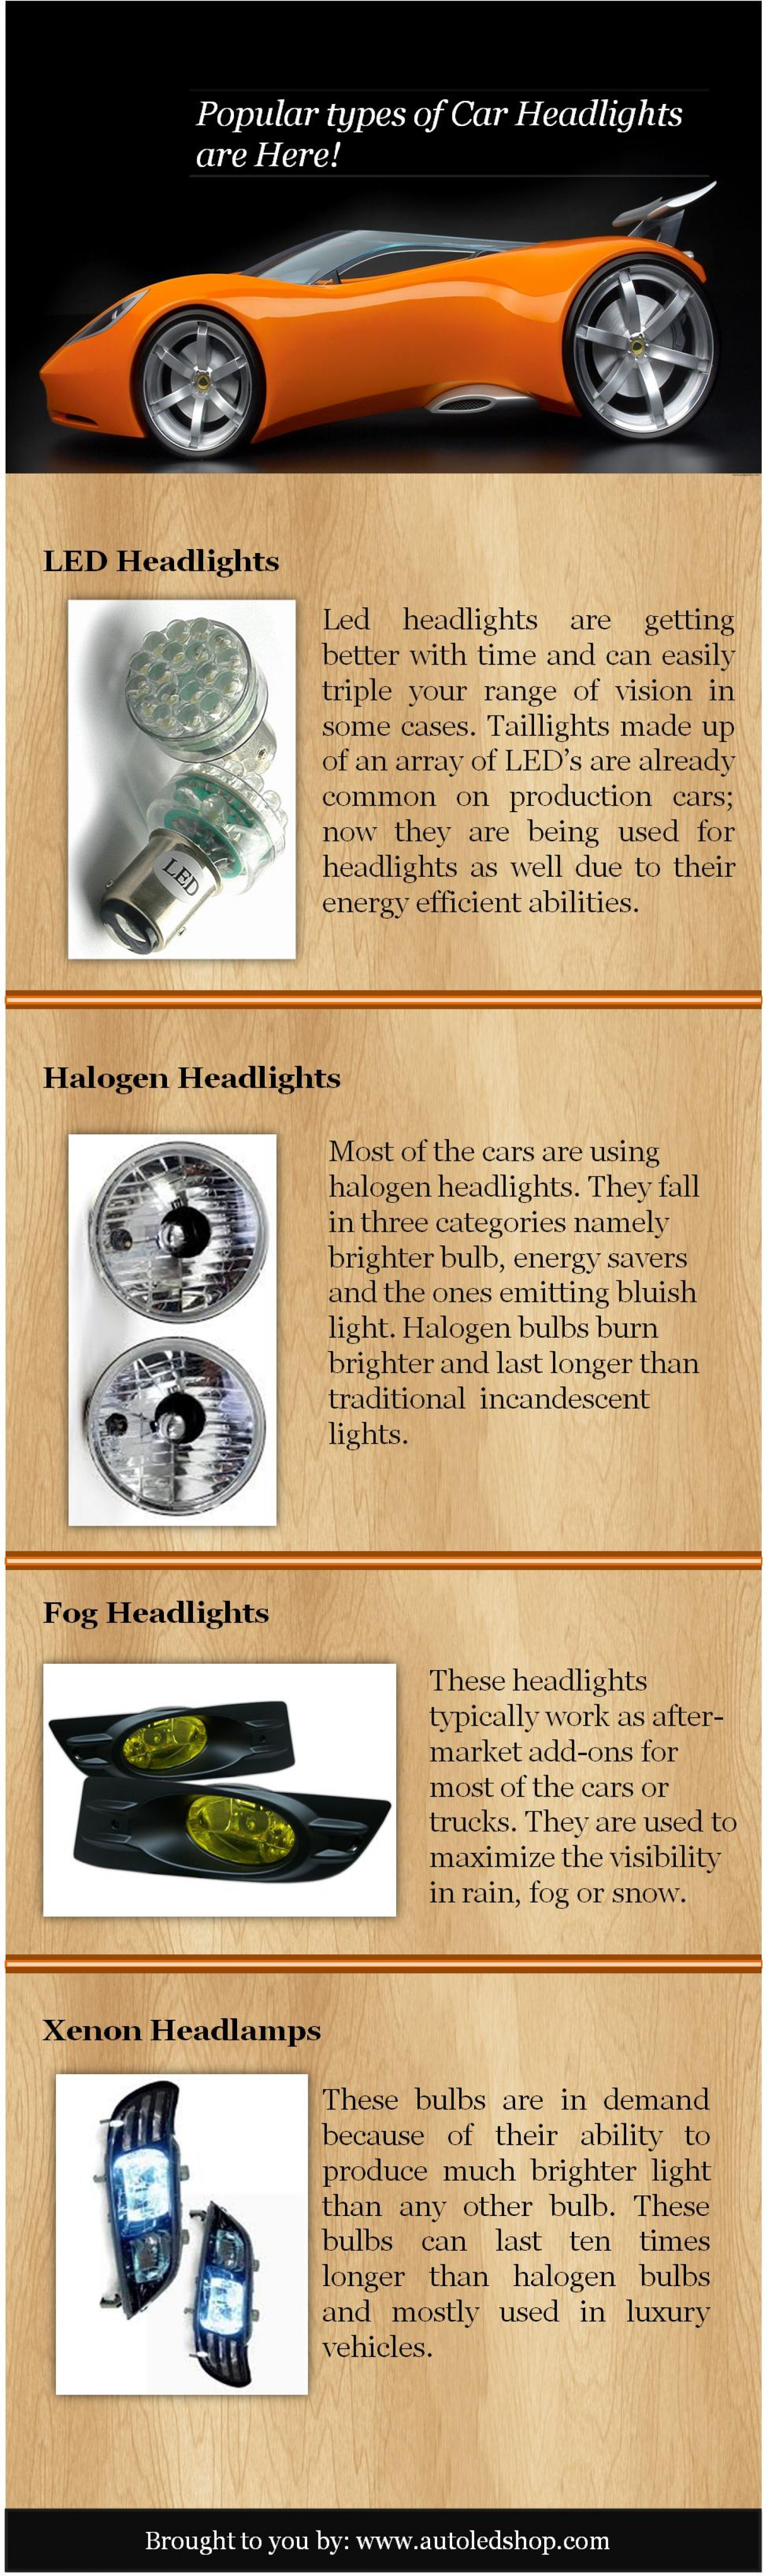 Popular types of Car Headlights Infographic